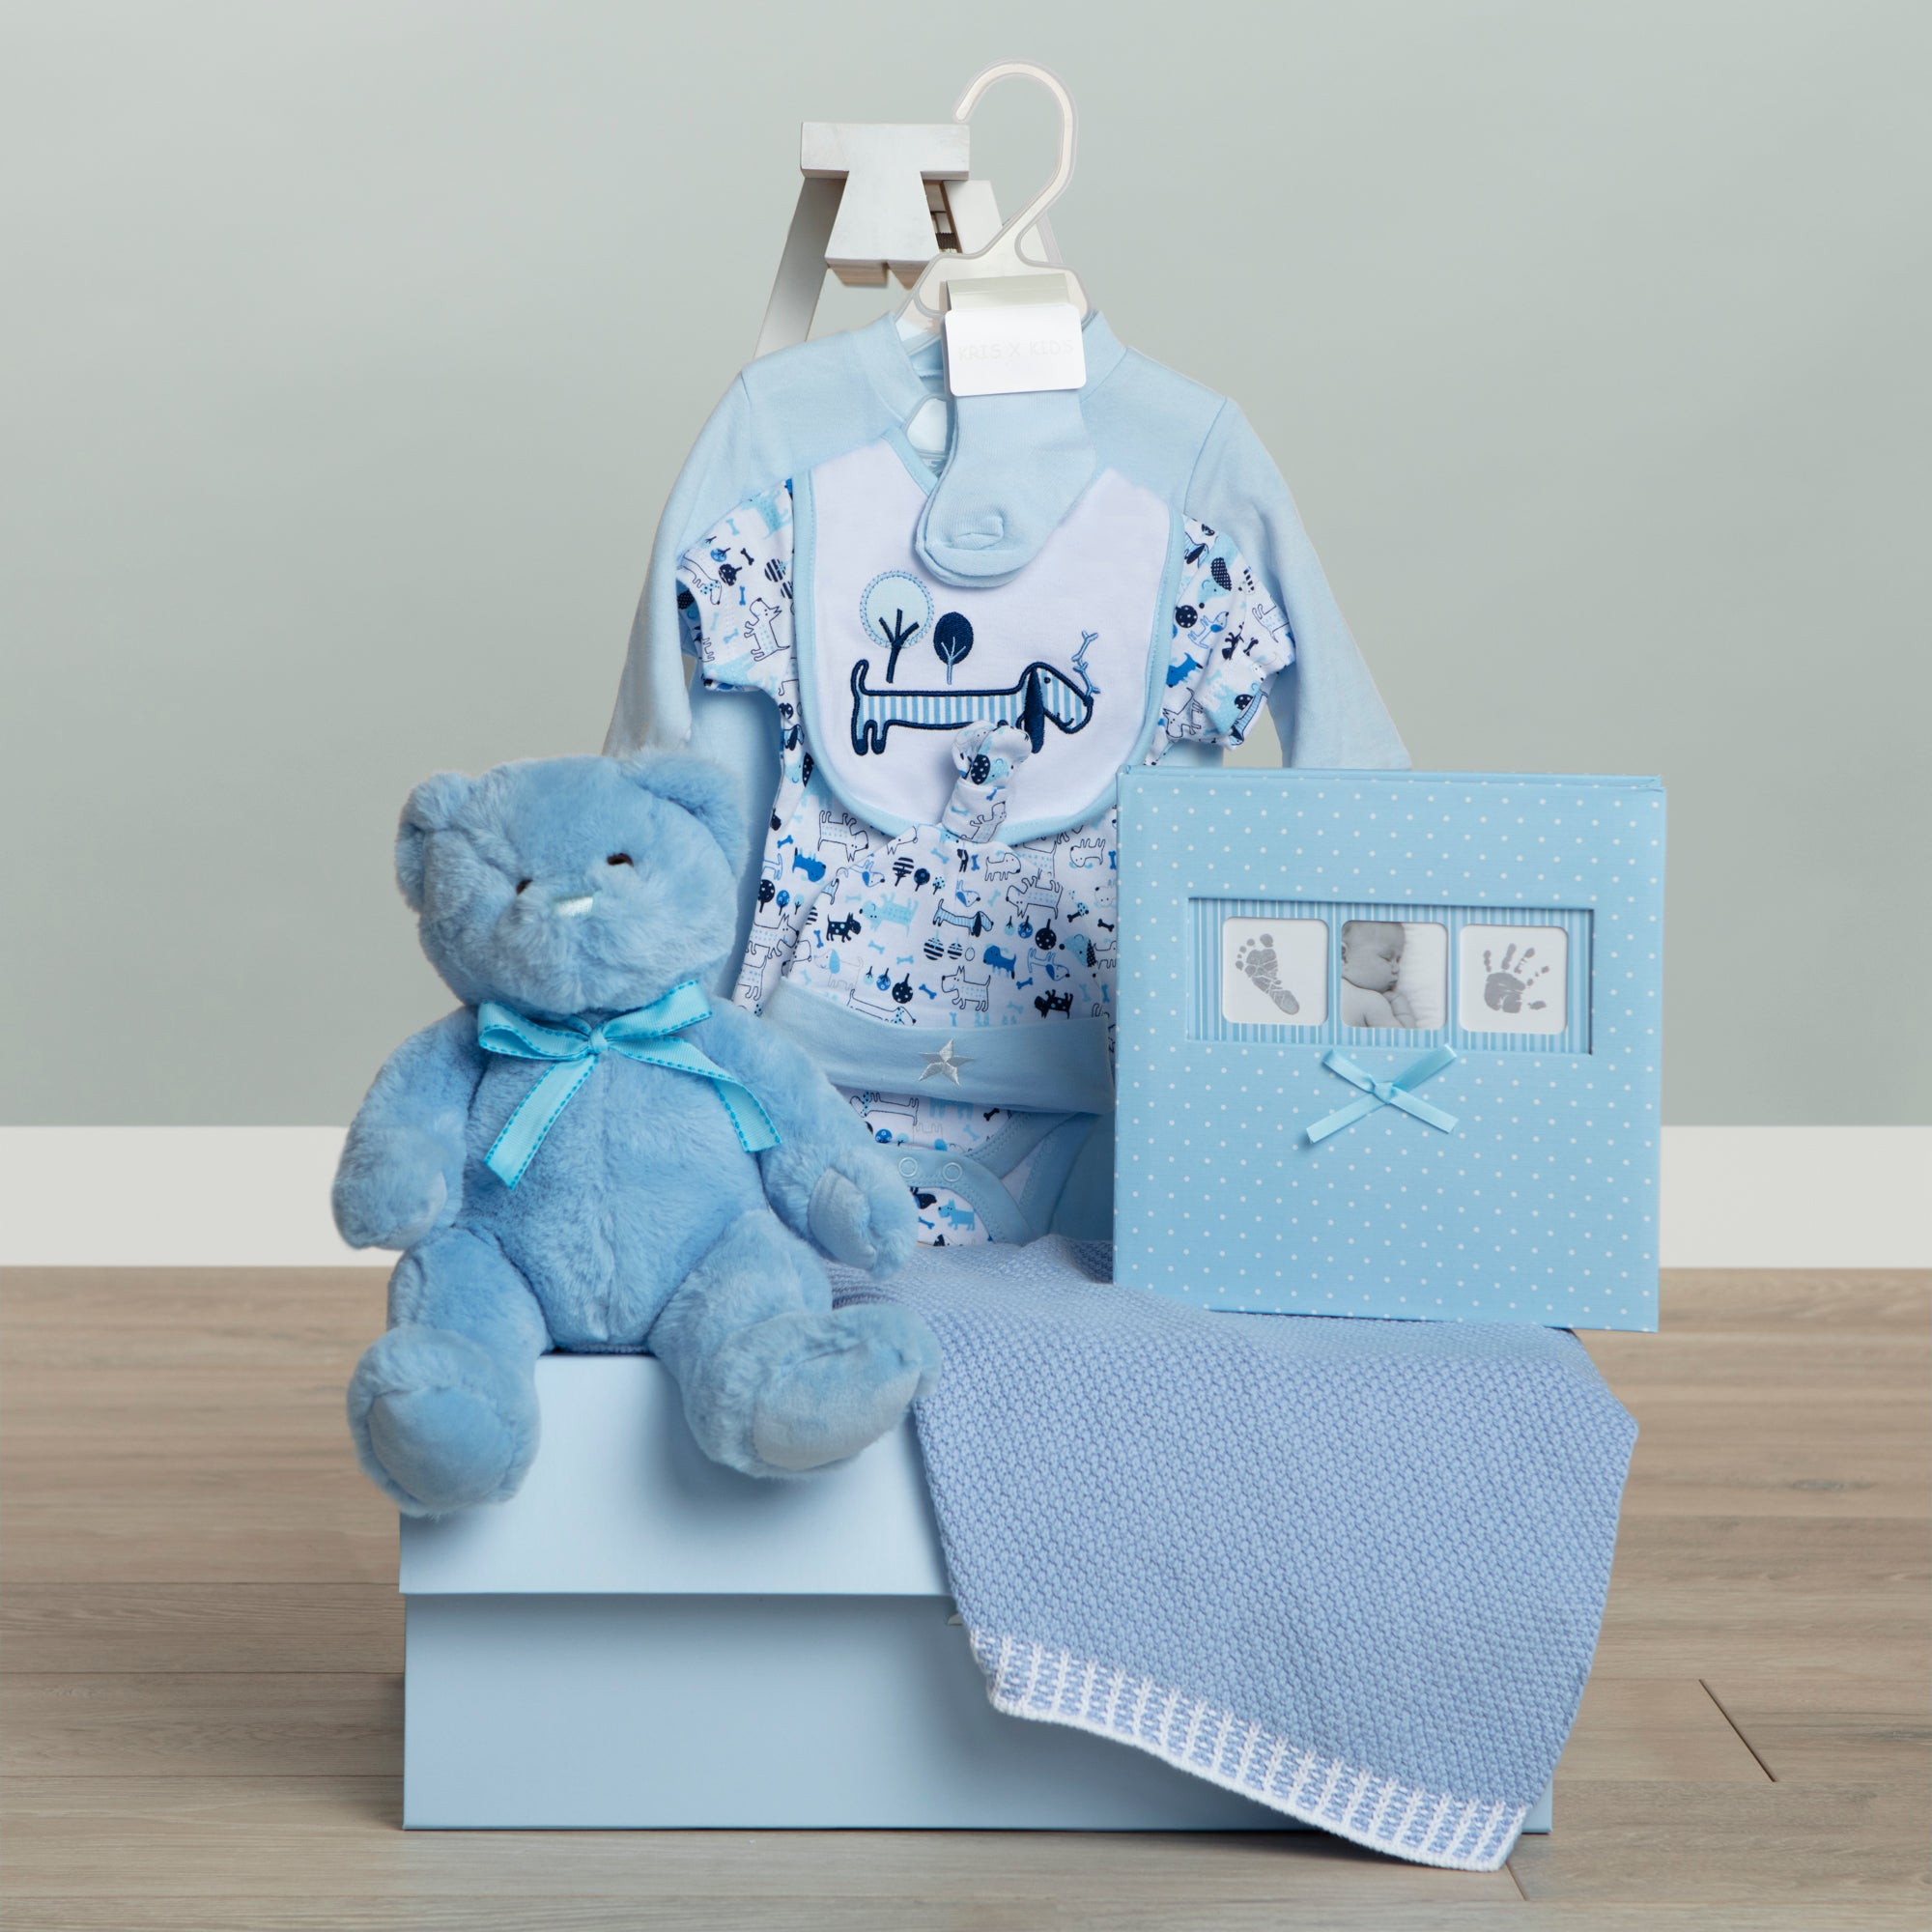 Celebration Baby Gift Hamper - Blue